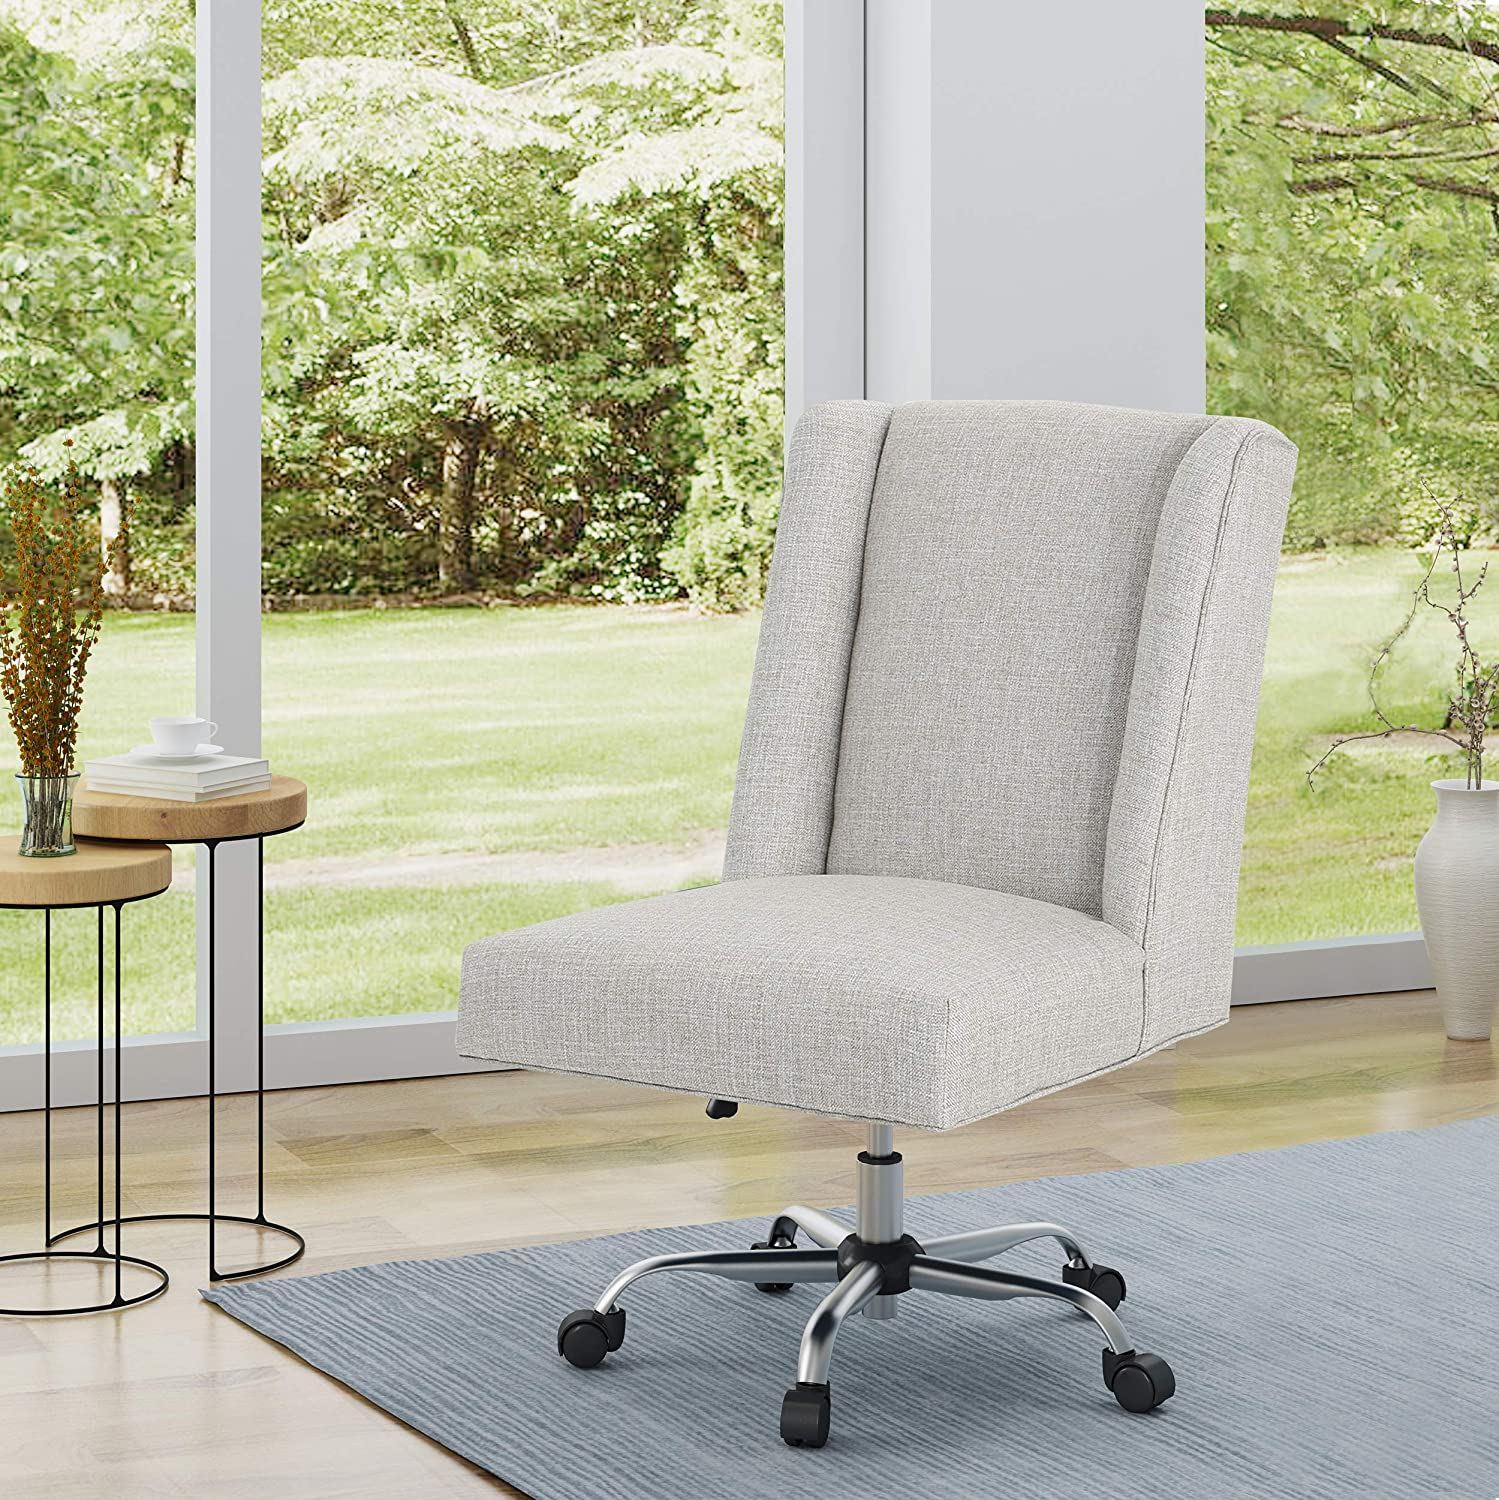 Christopher Knight Home 306019 Tucker Office Chair, Beige